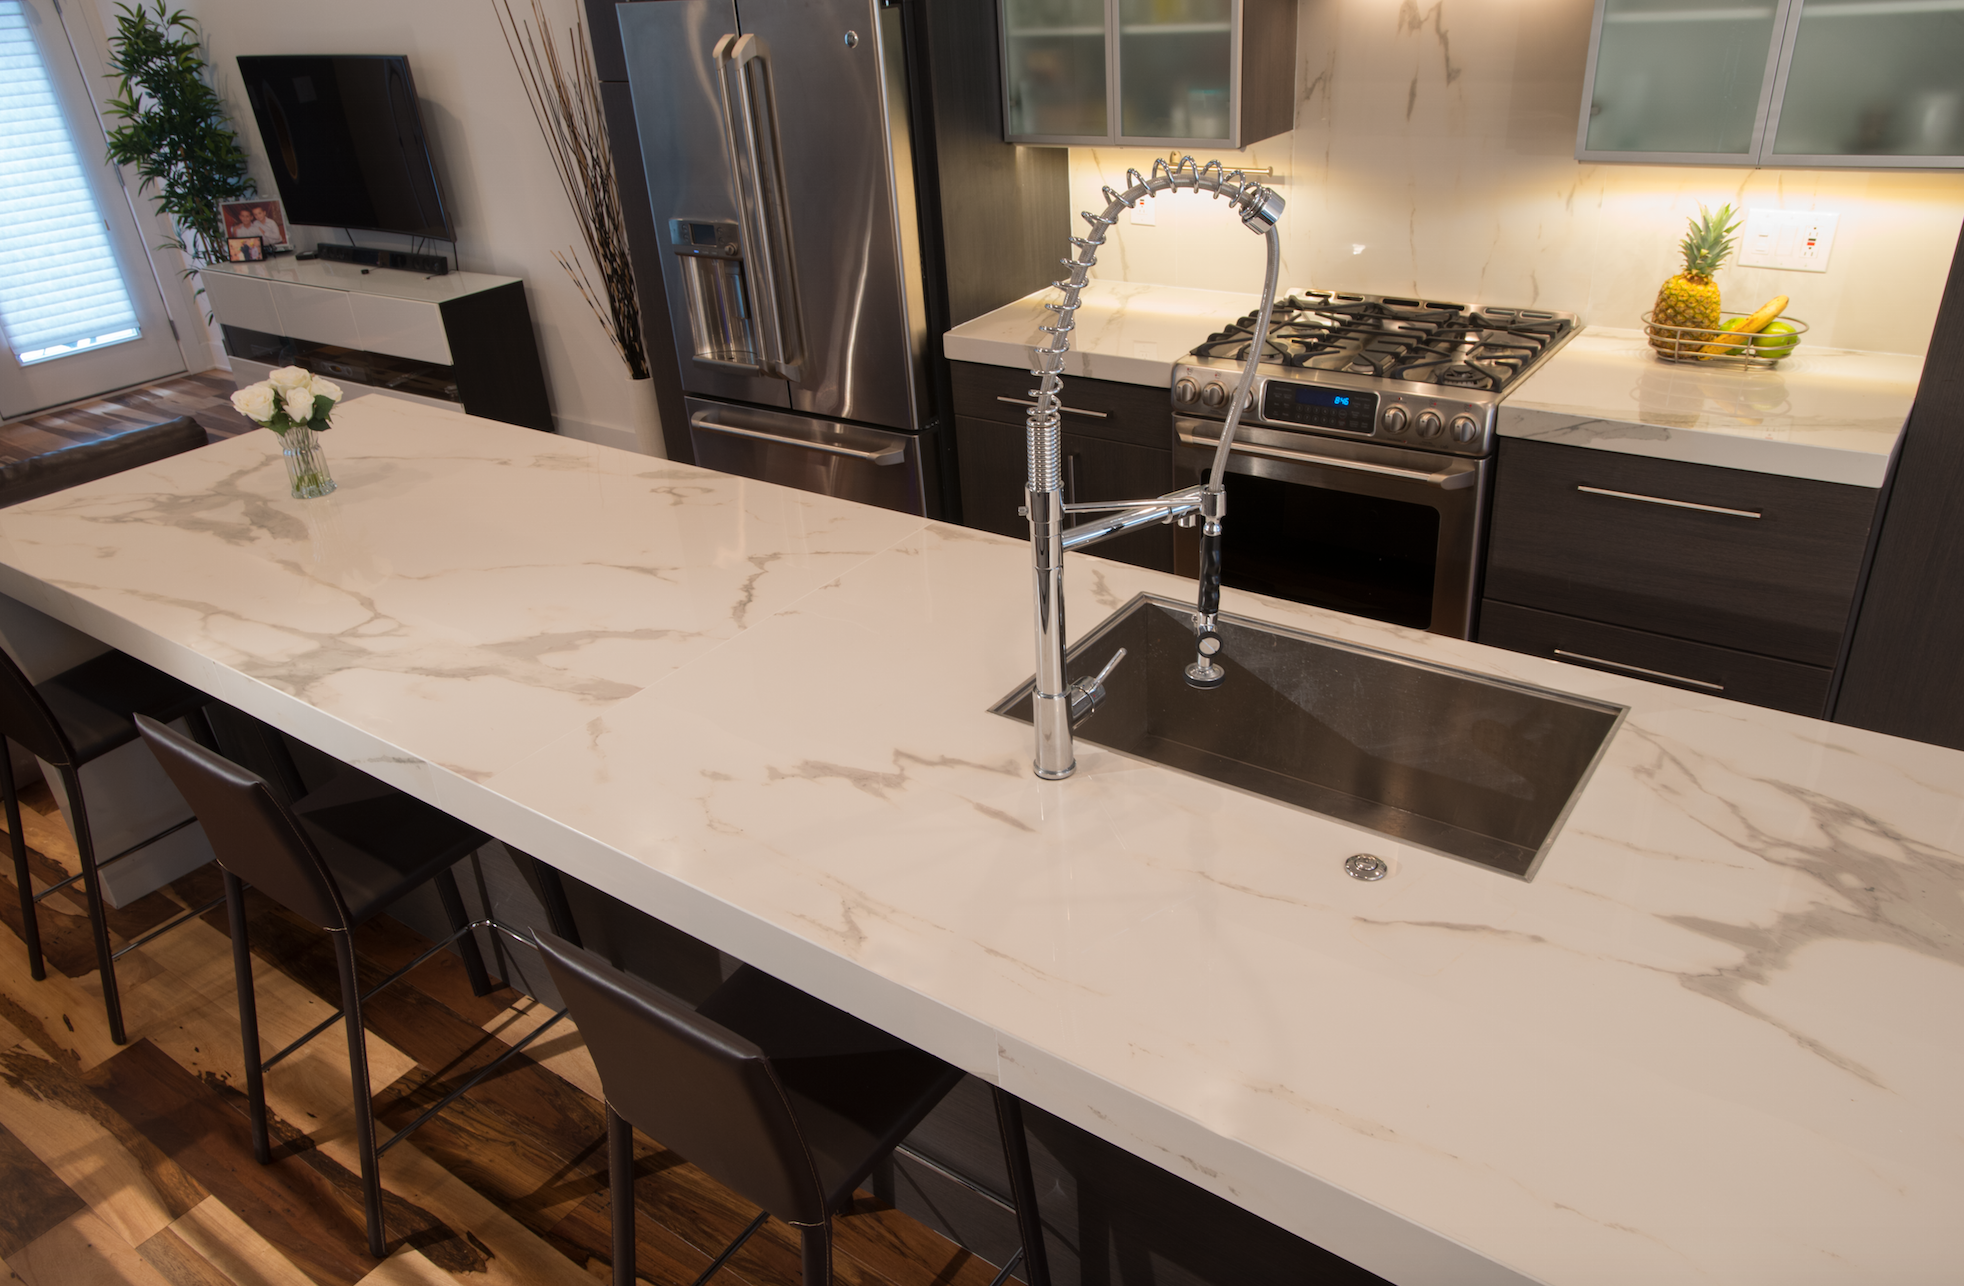 Talking Tile From Coverings2015 Tile Countertops Kitchen Porcelain Tiles Kitchen Kitchen Countertops